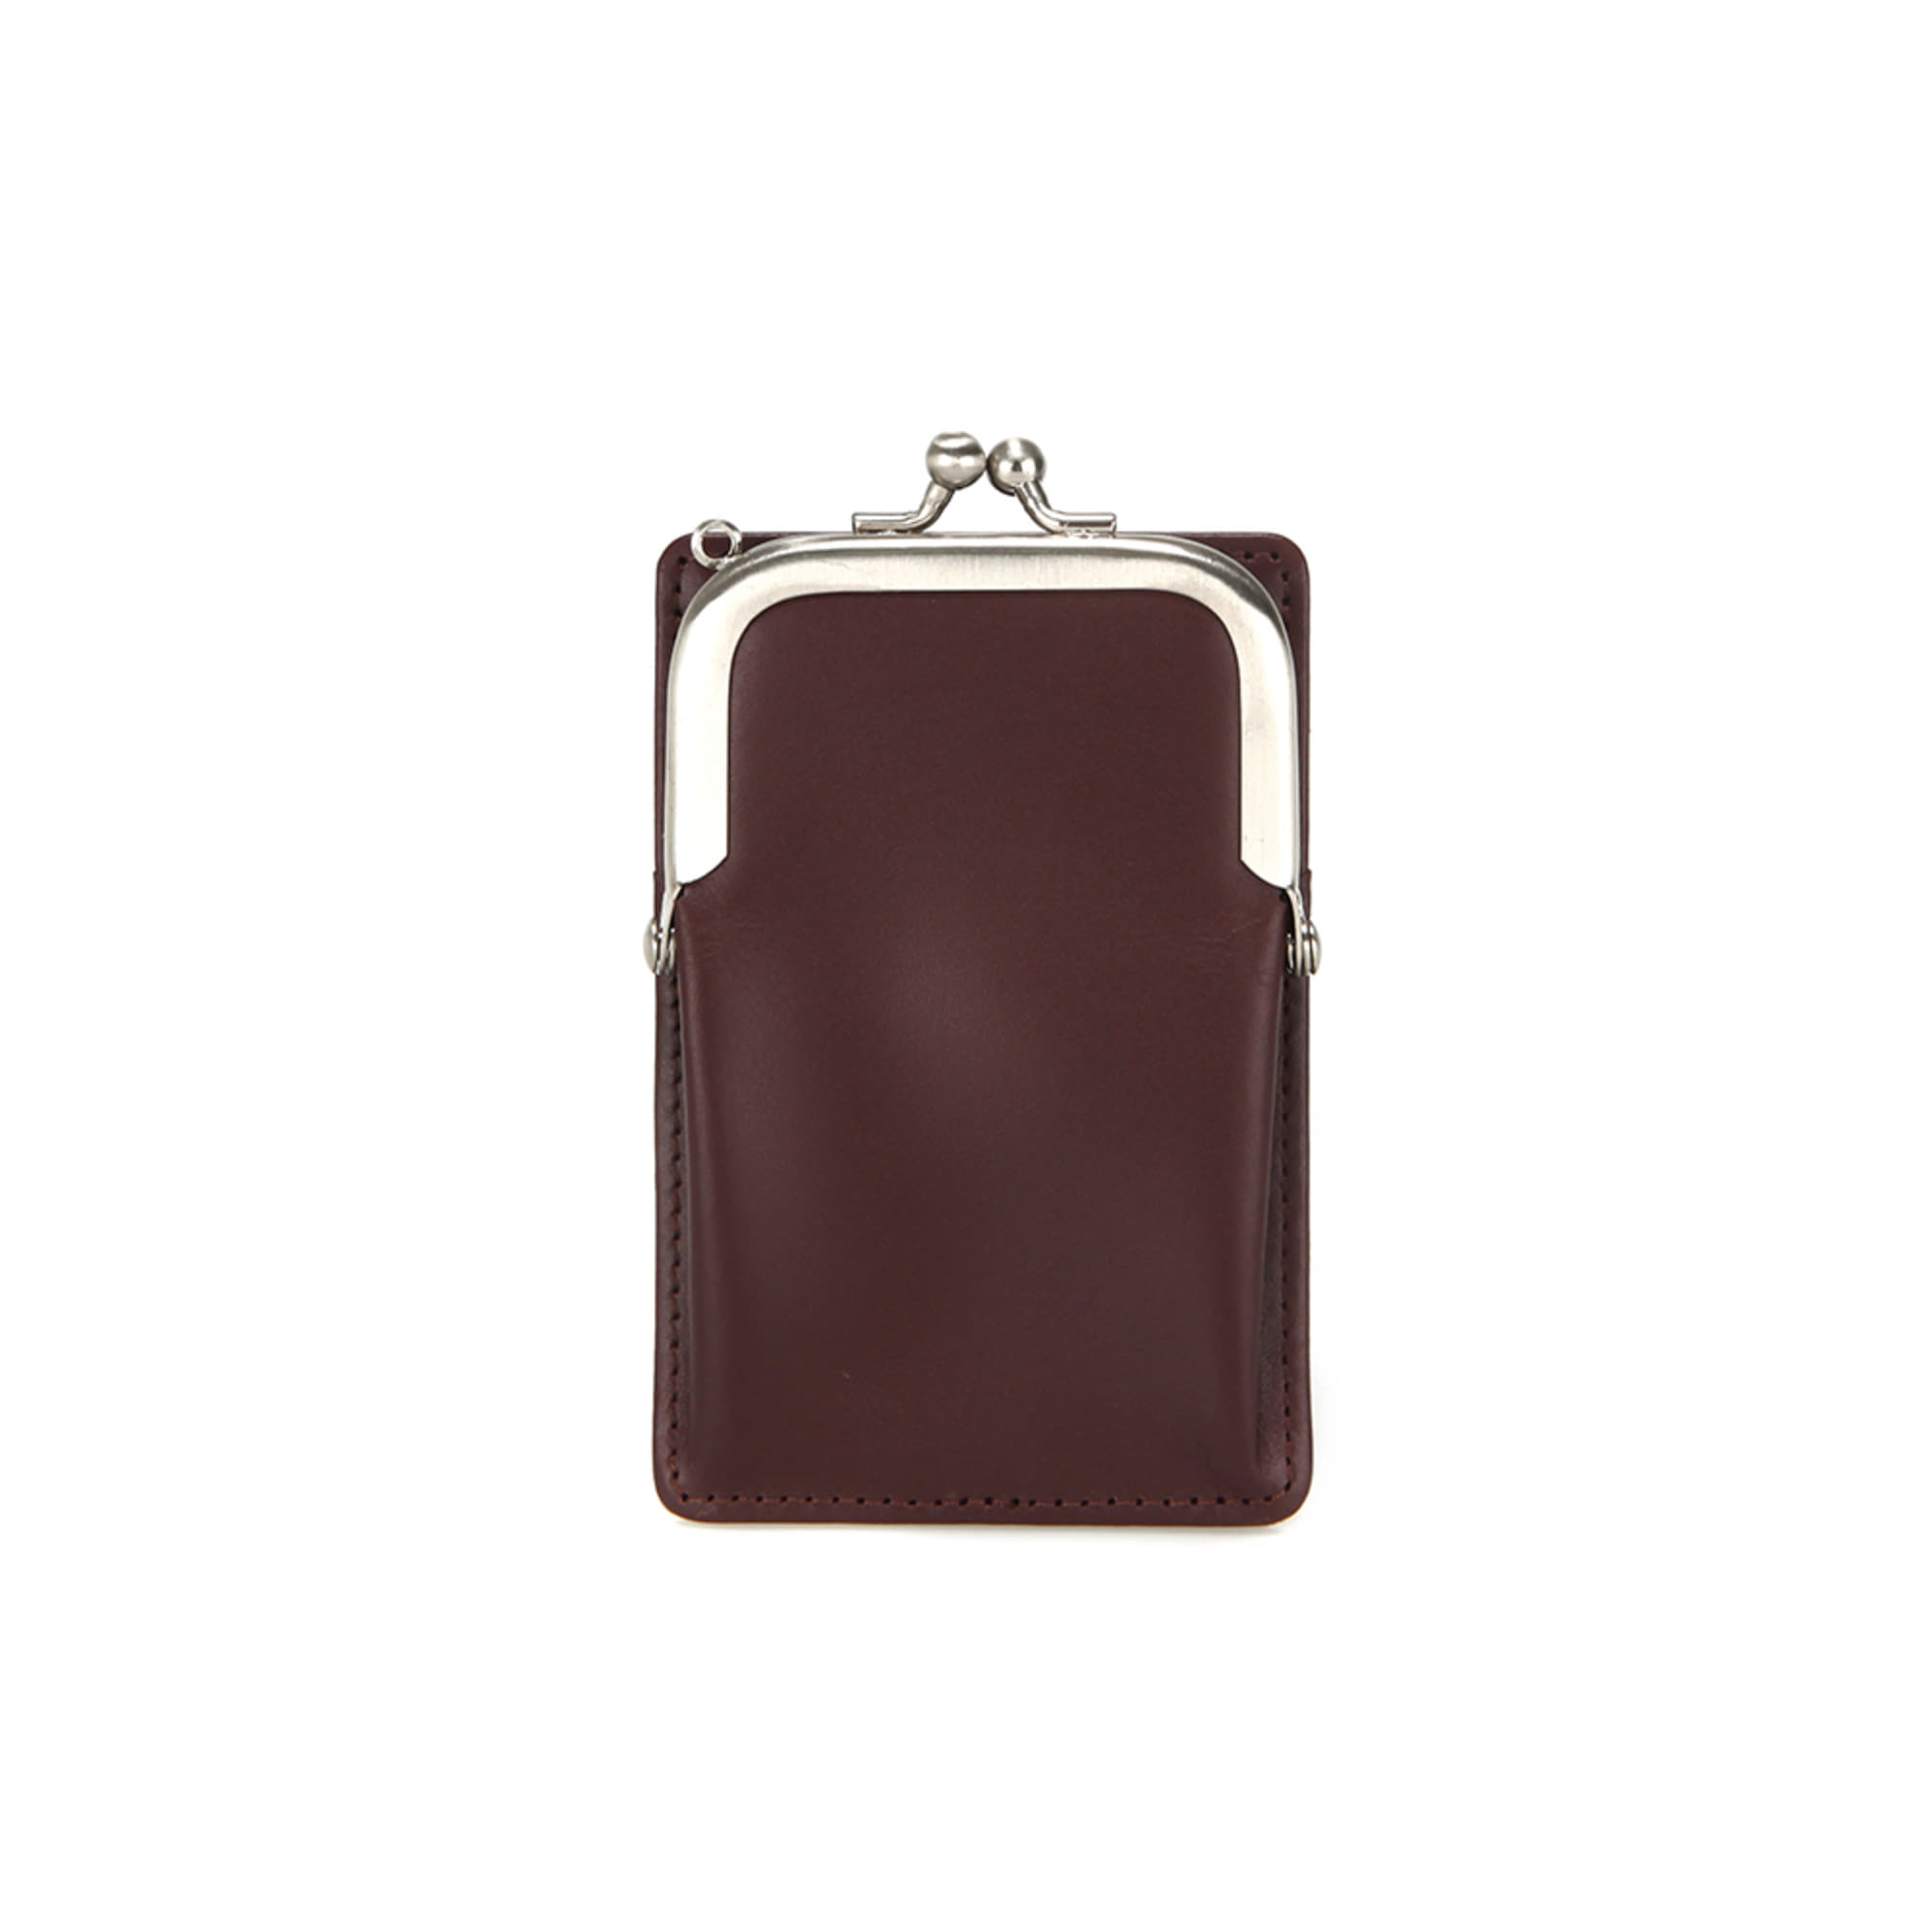 [DISCONTINUE] FRAME MINI CARD WALLET - WINE